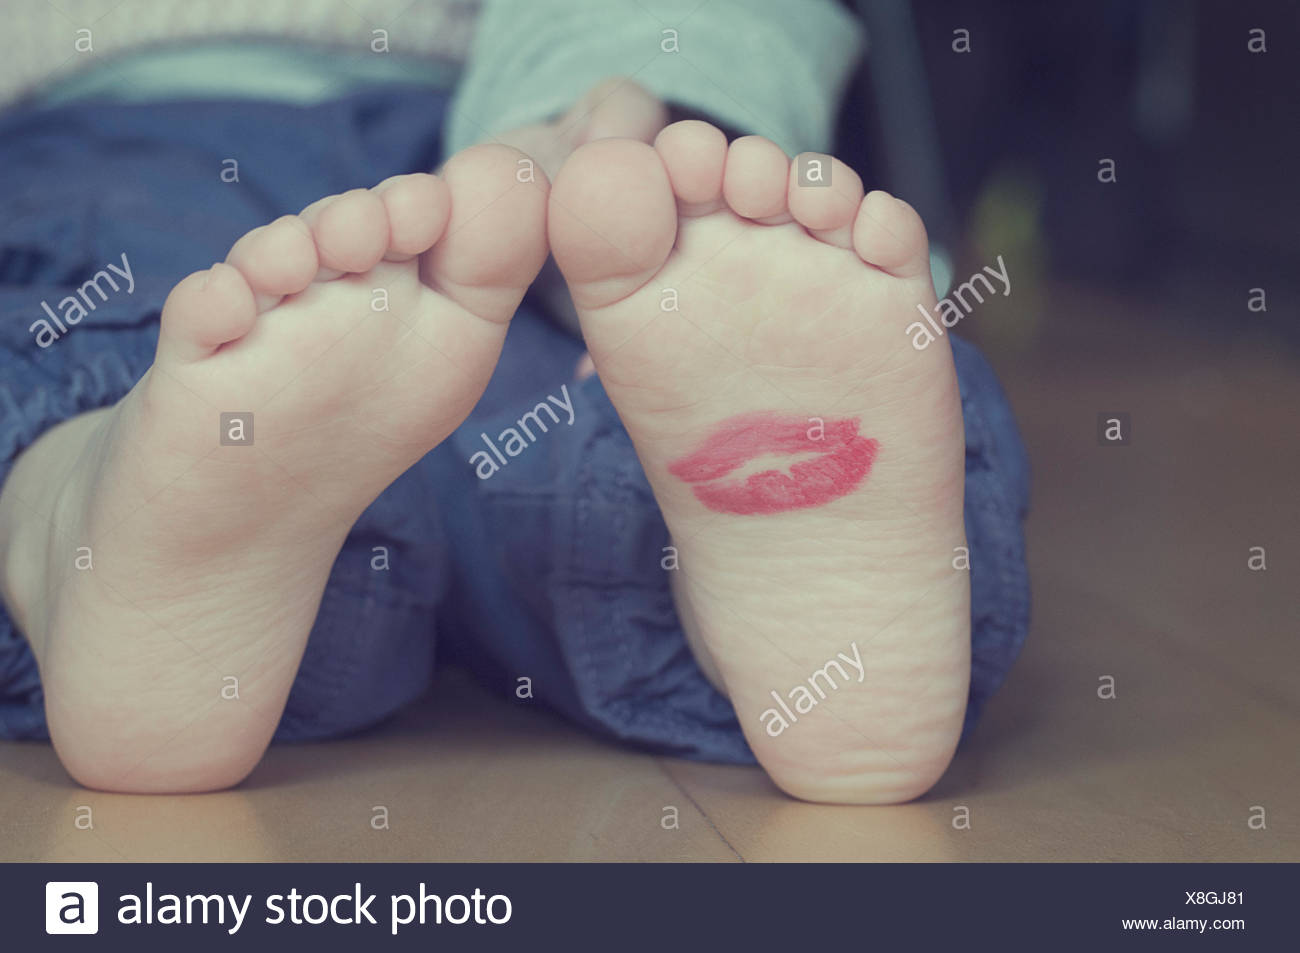 Lipstick kiss on toddler's foot - Stock Image